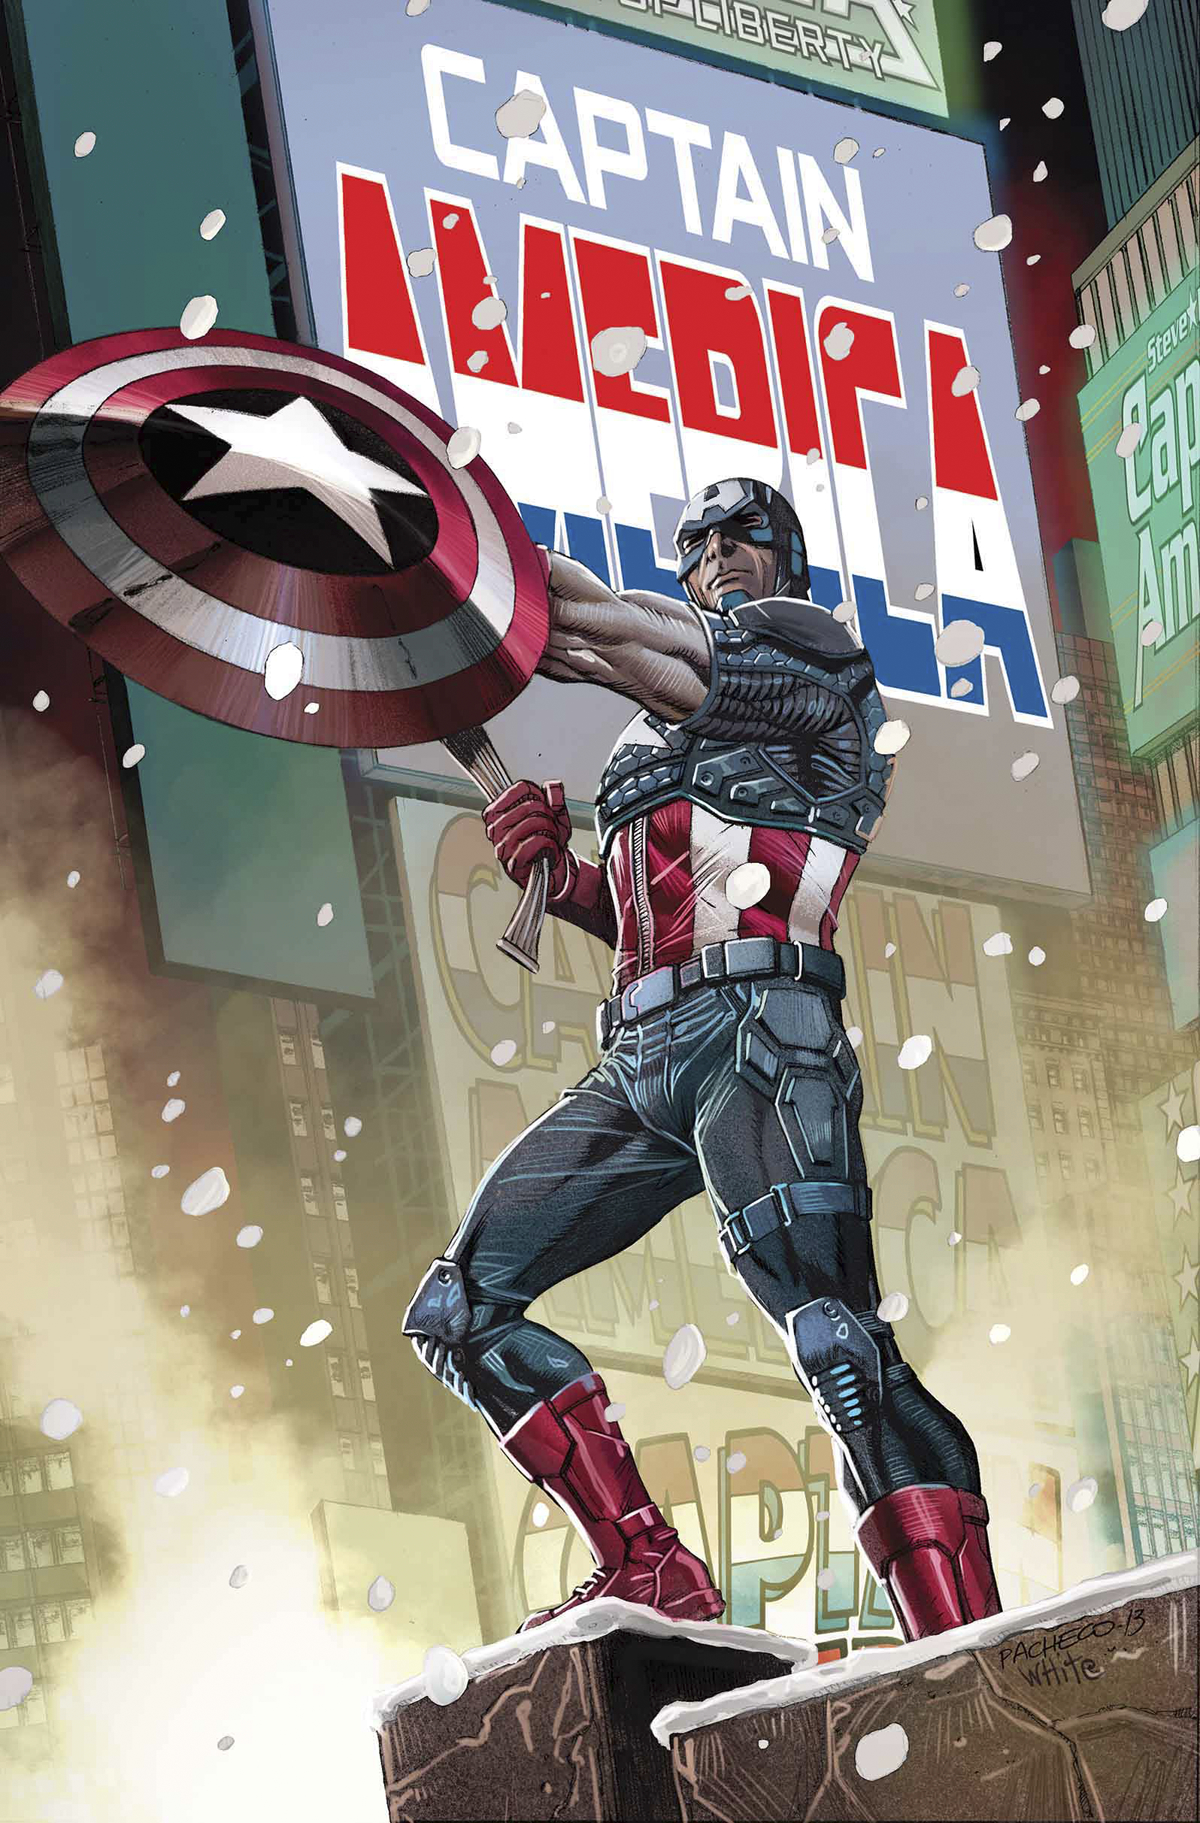 CAPTAIN AMERICA BY PACHECO POSTER